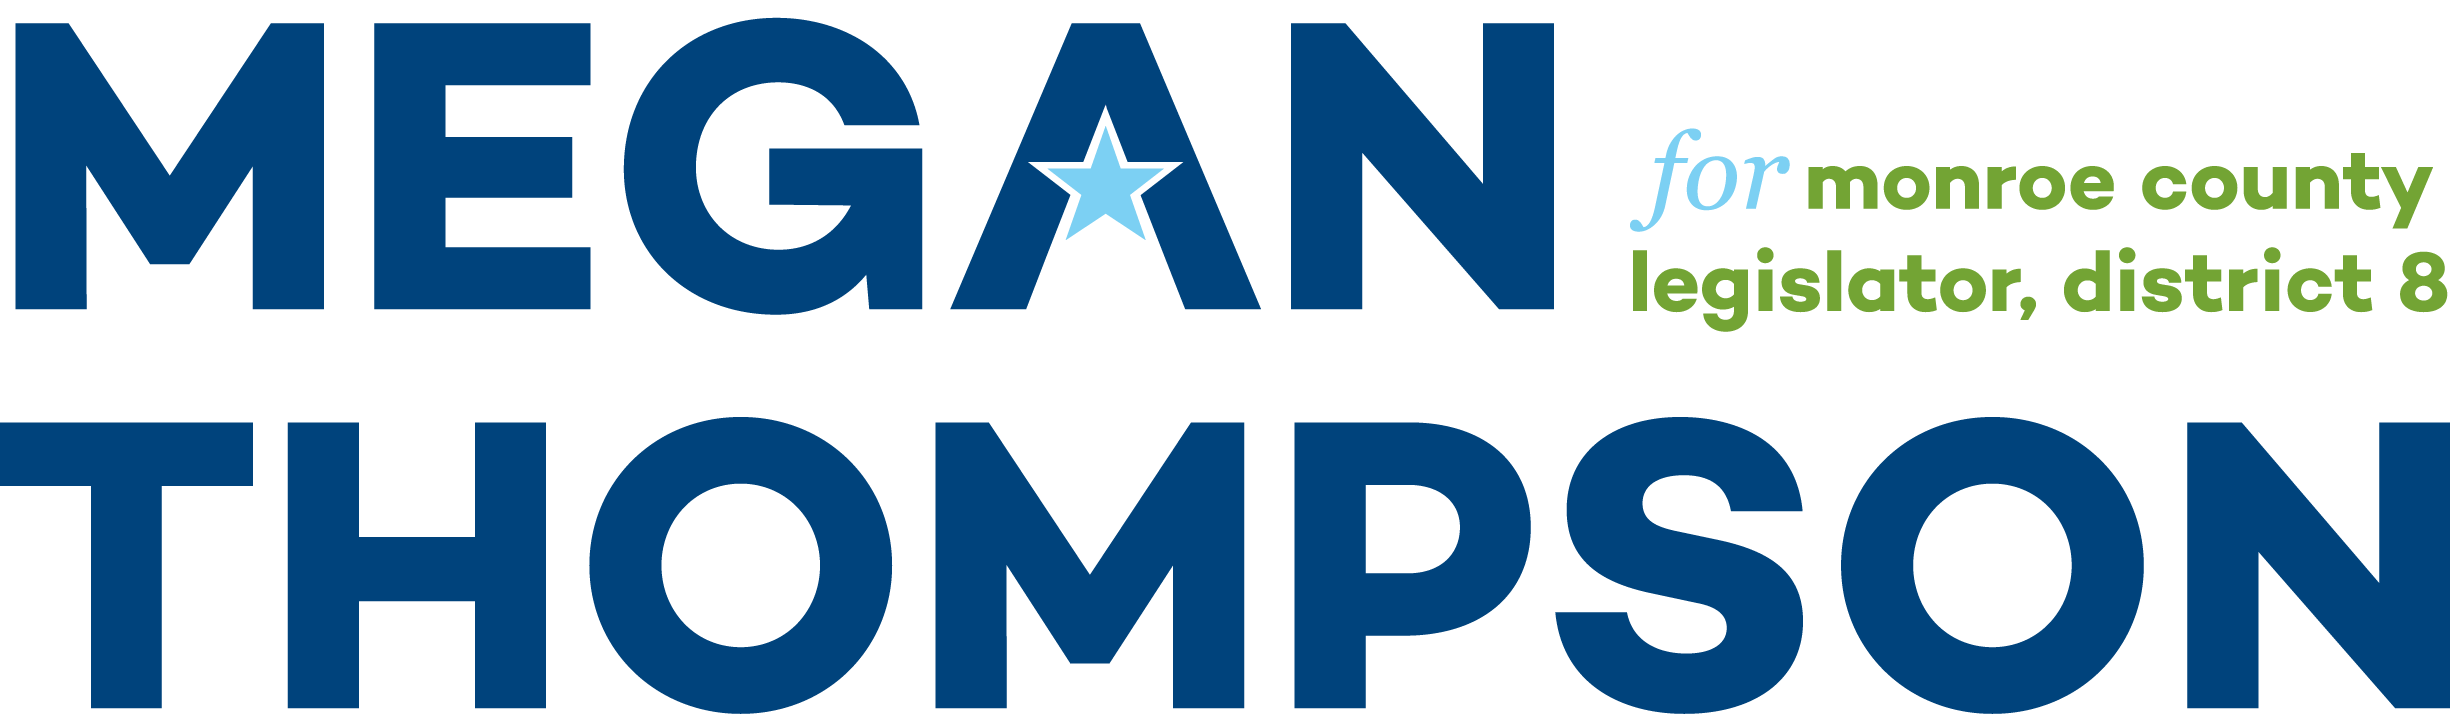 Megan Thompson  for Monroe County Legislator